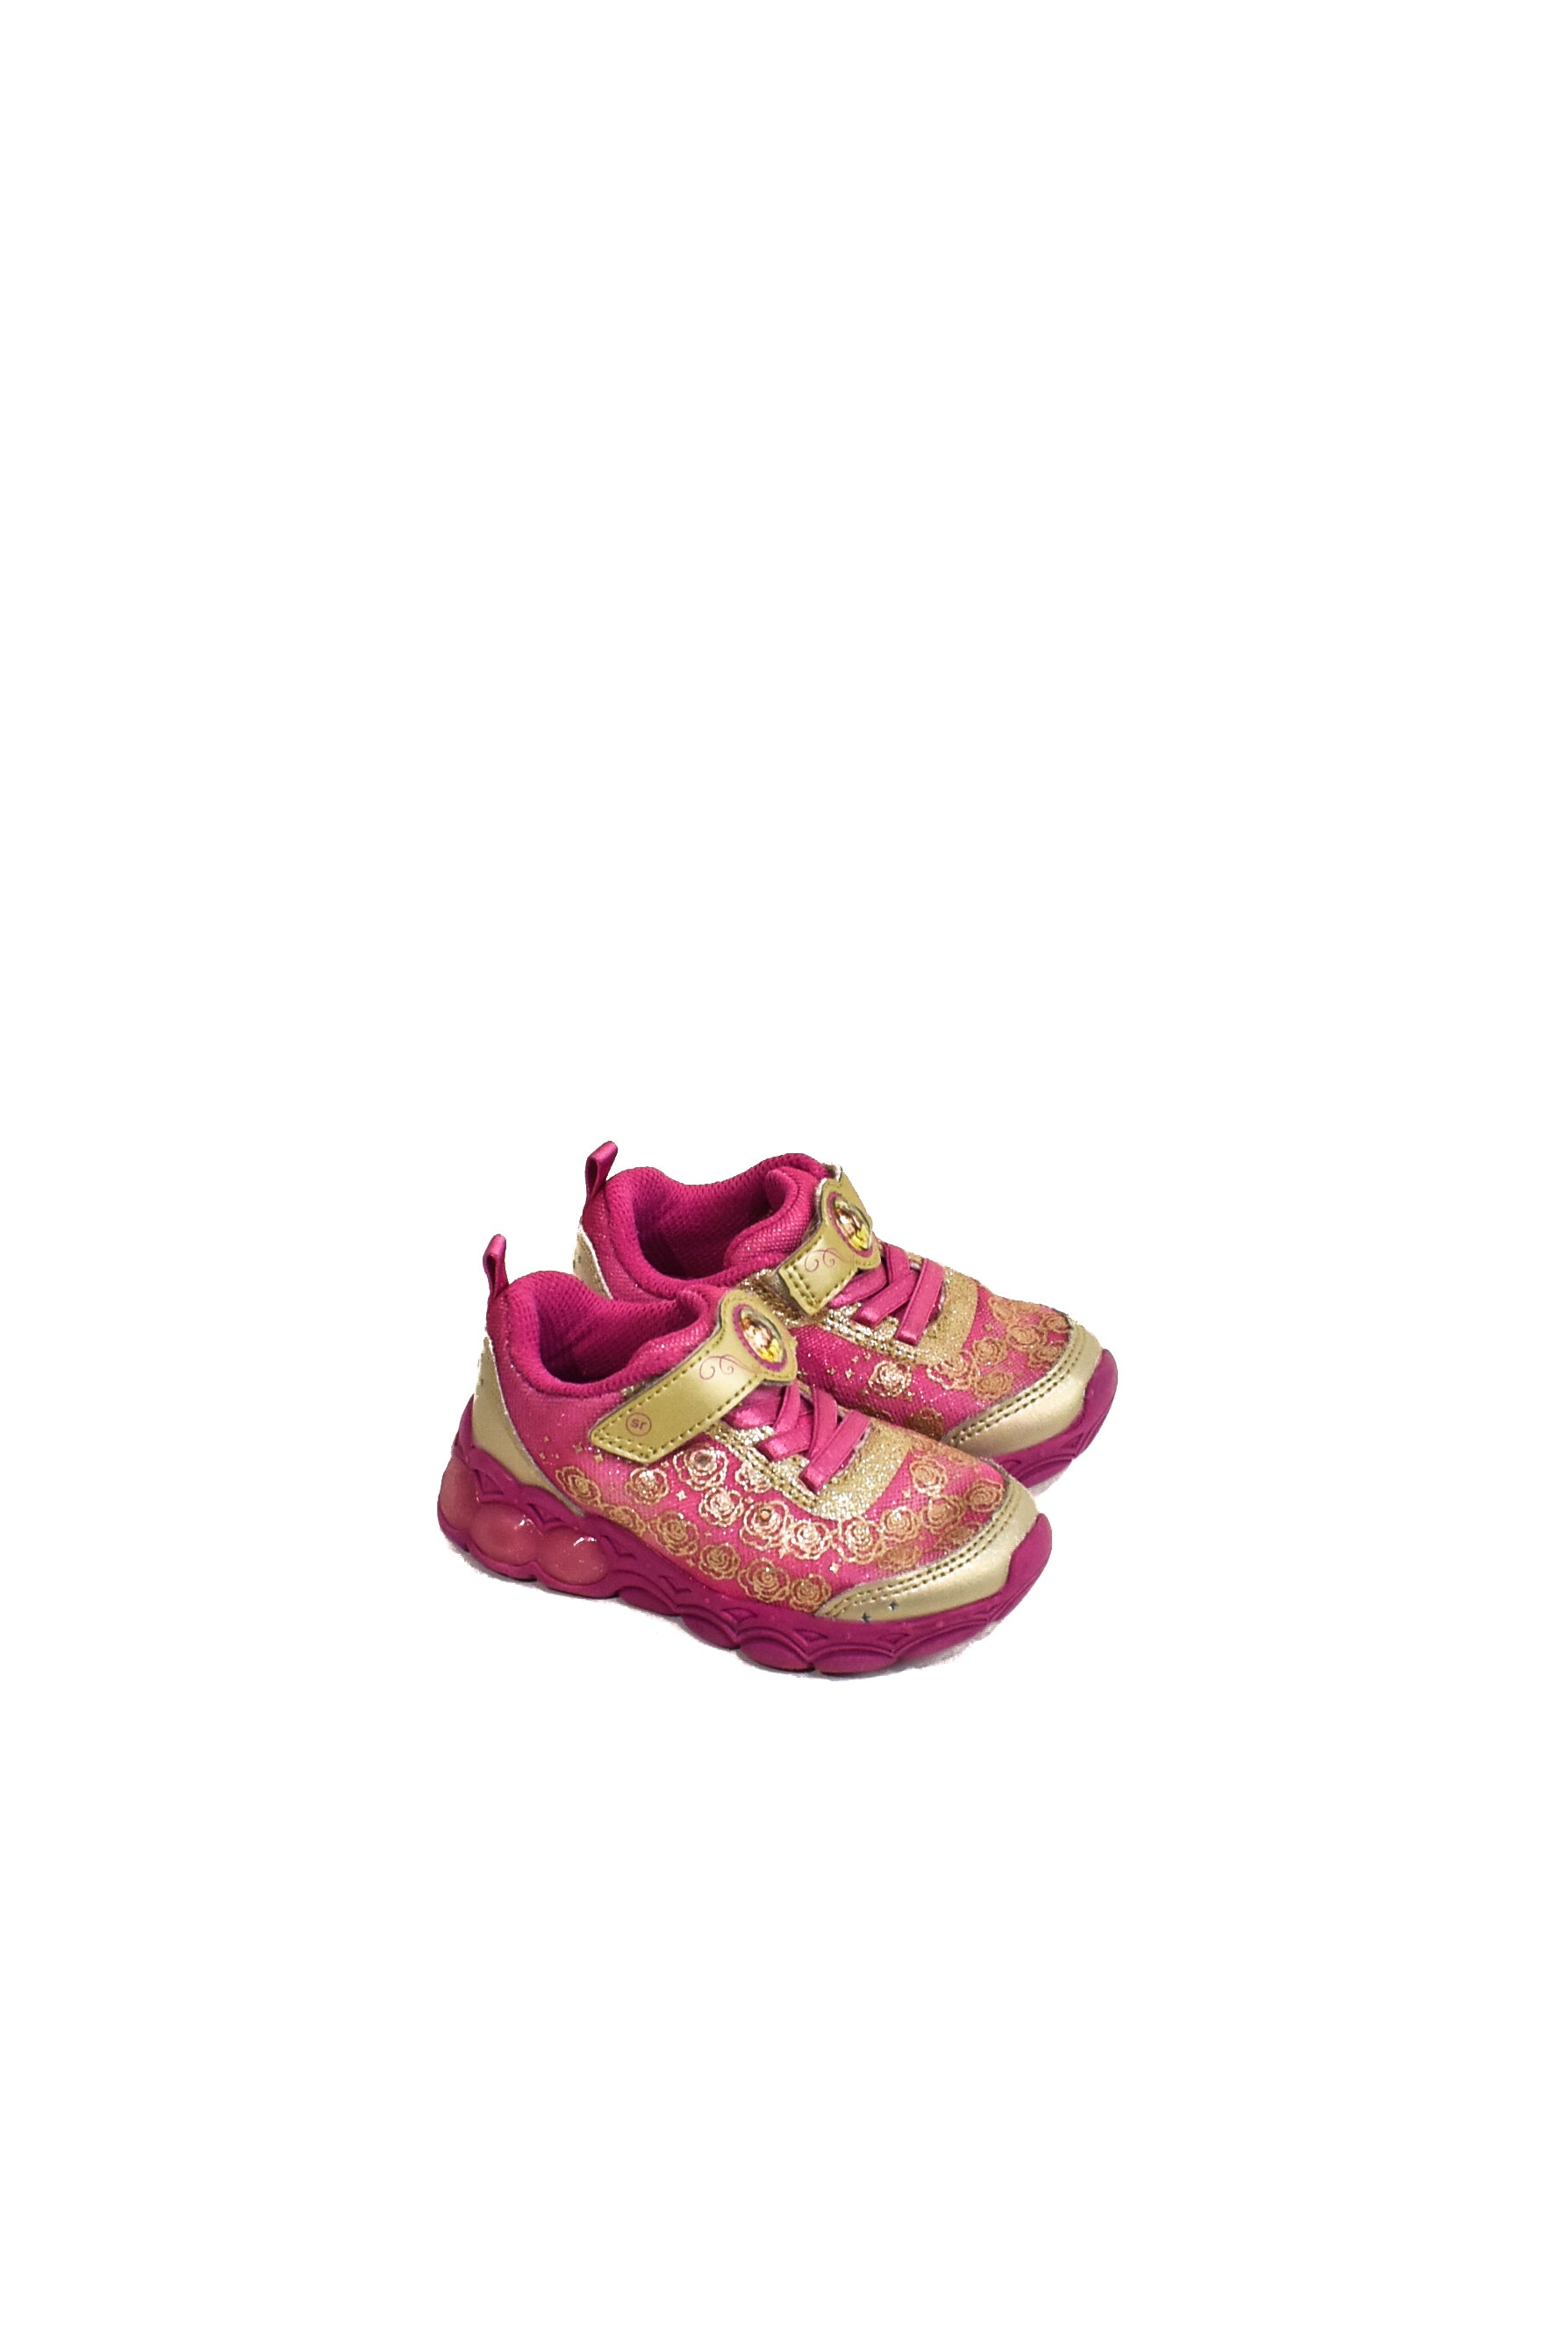 Stride Rite at up to 90% off at Retykle